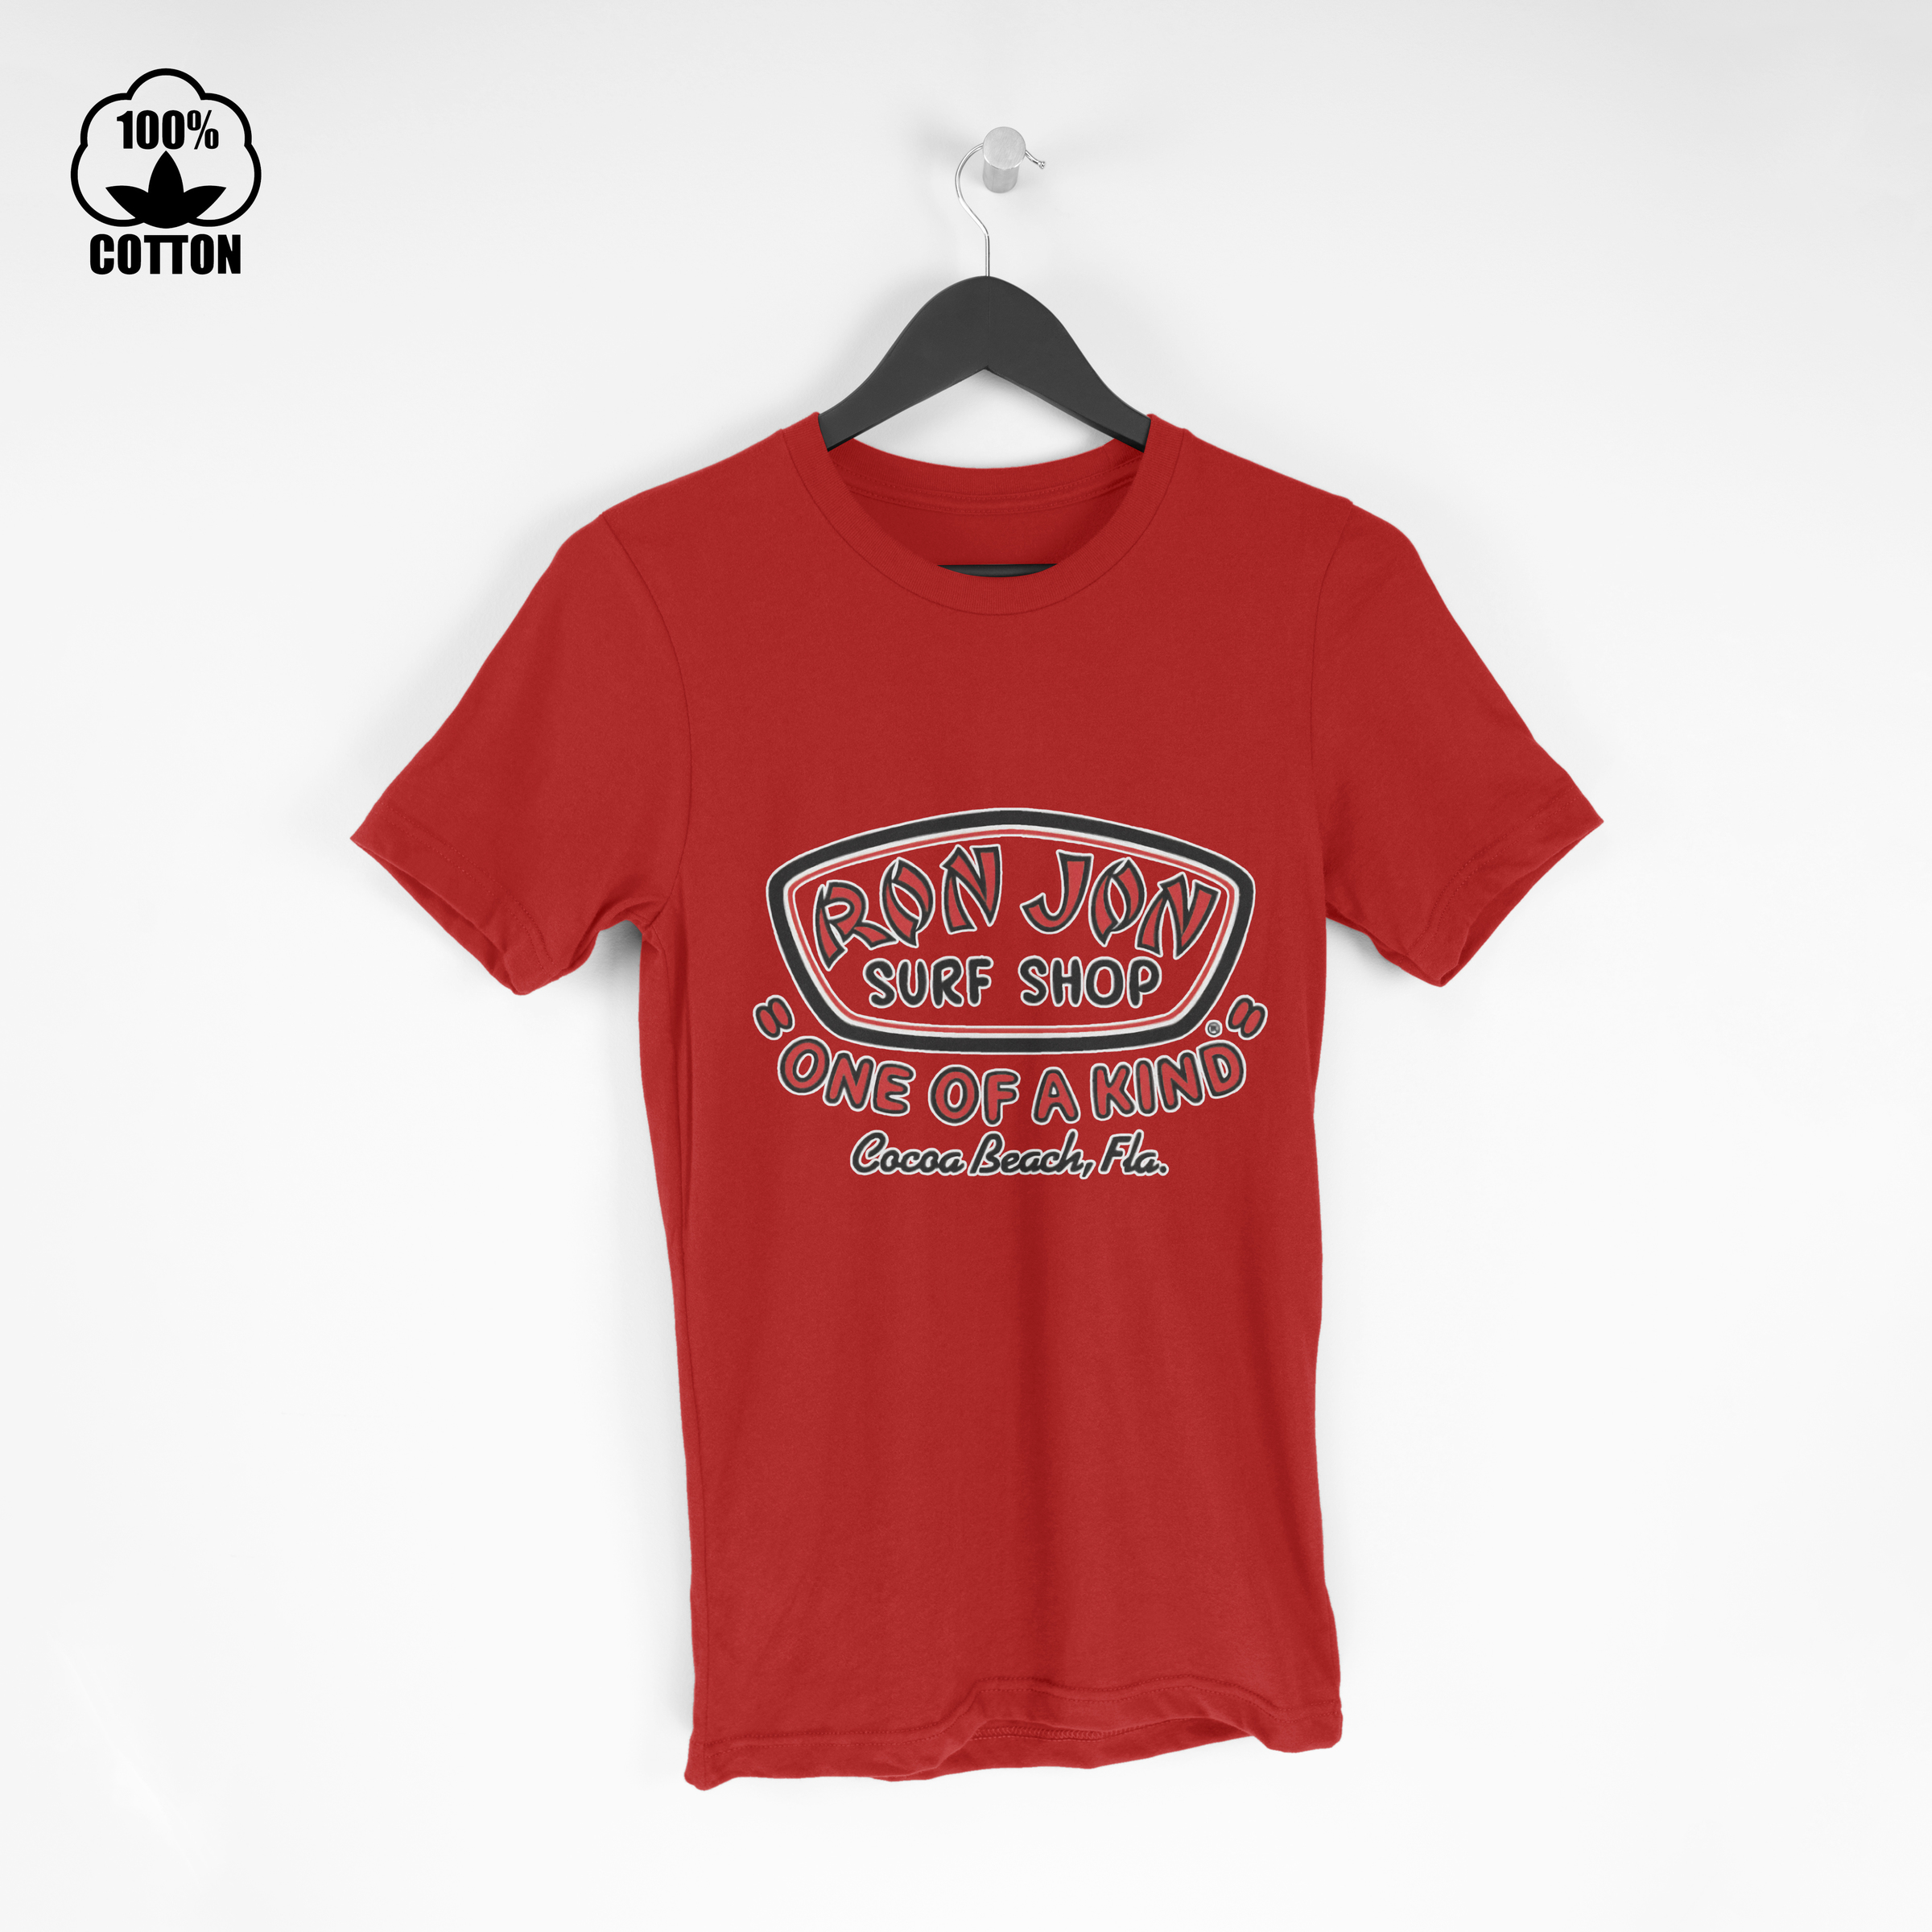 LIMITED EDITION!! ron jon surf shop t shirts tee Red.jpg